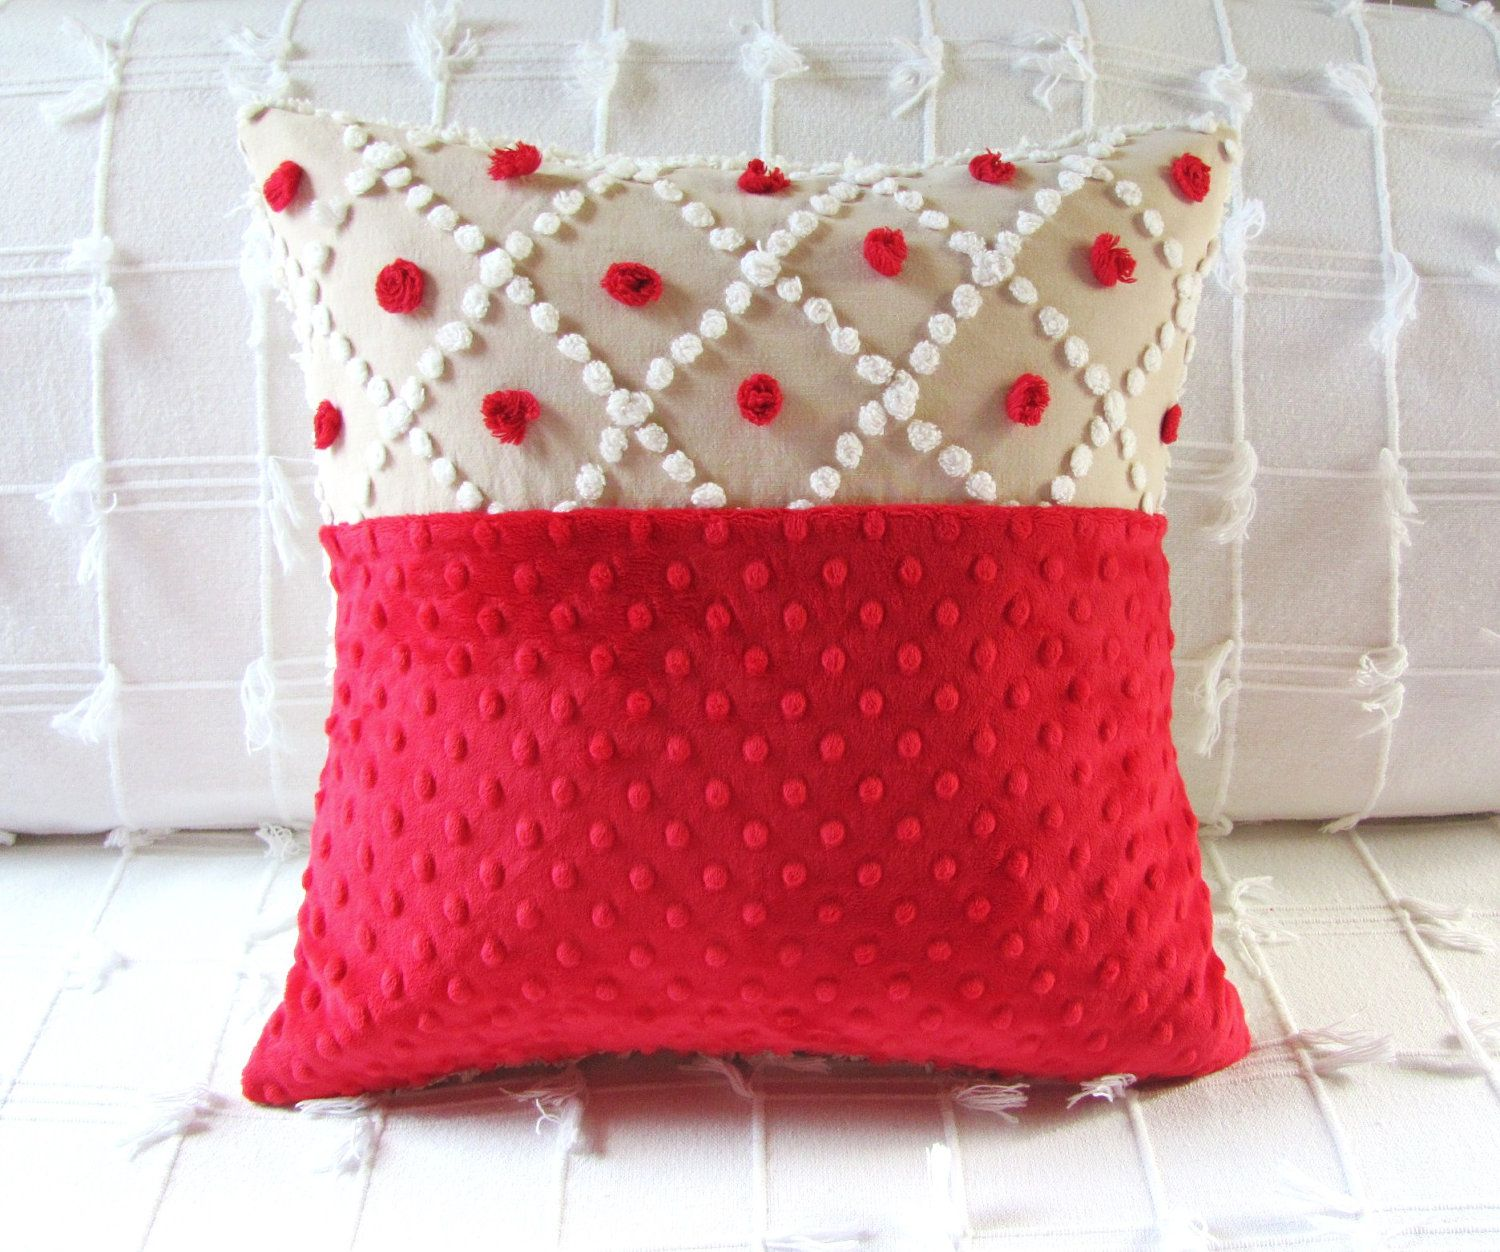 Christmas Decorating Ideas: 10 Pretty Holiday Pillows & Christmas Decorating Ideas: 10 Pretty Holiday Pillows | Pillows ... pillowsntoast.com